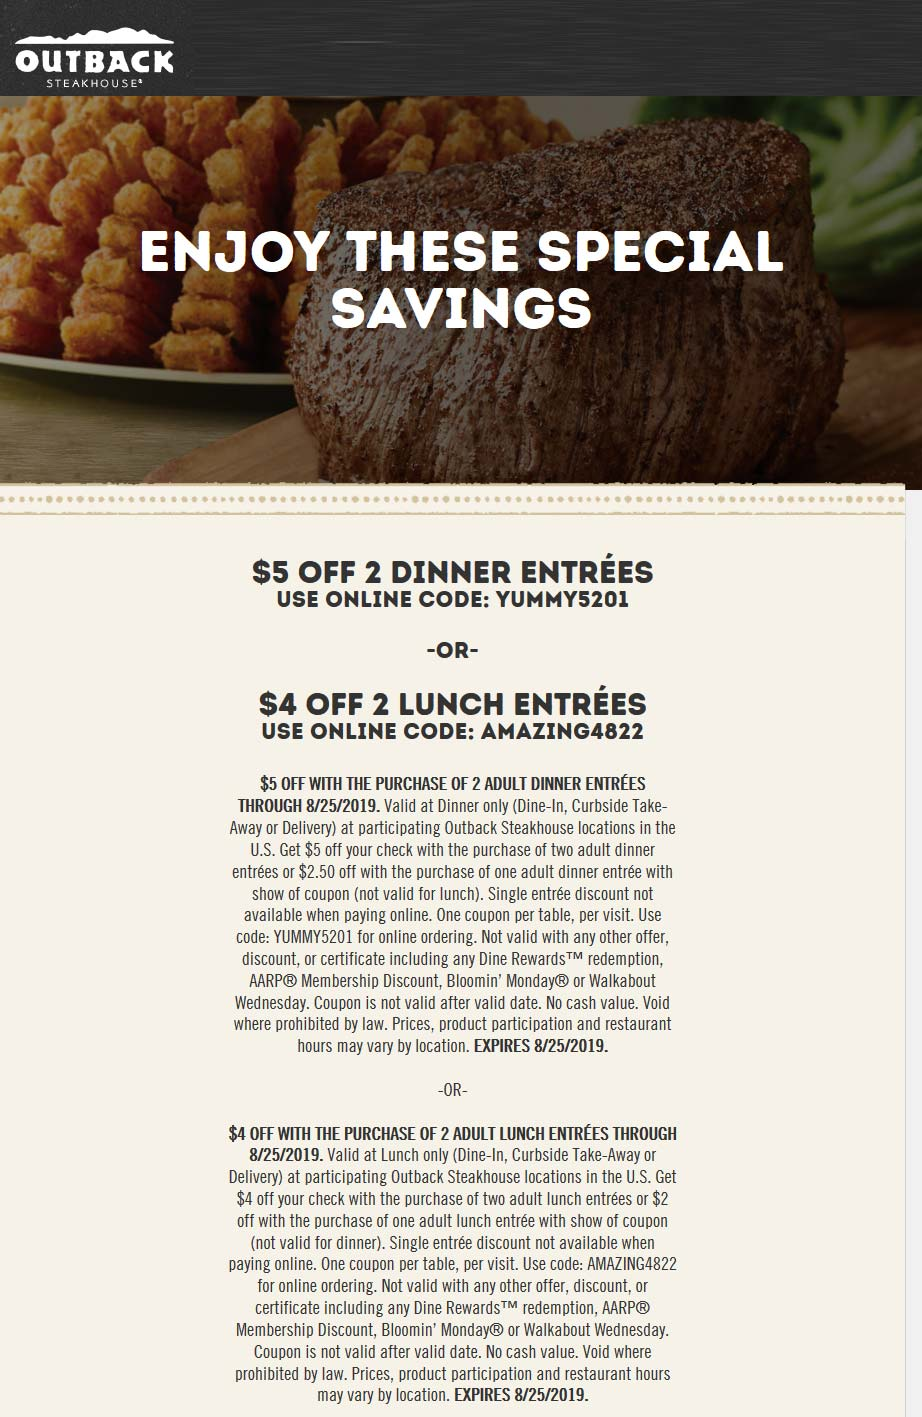 OutbackSteakhouse.com Promo Coupon $4-$5 off entrees at Outback Steakhouse